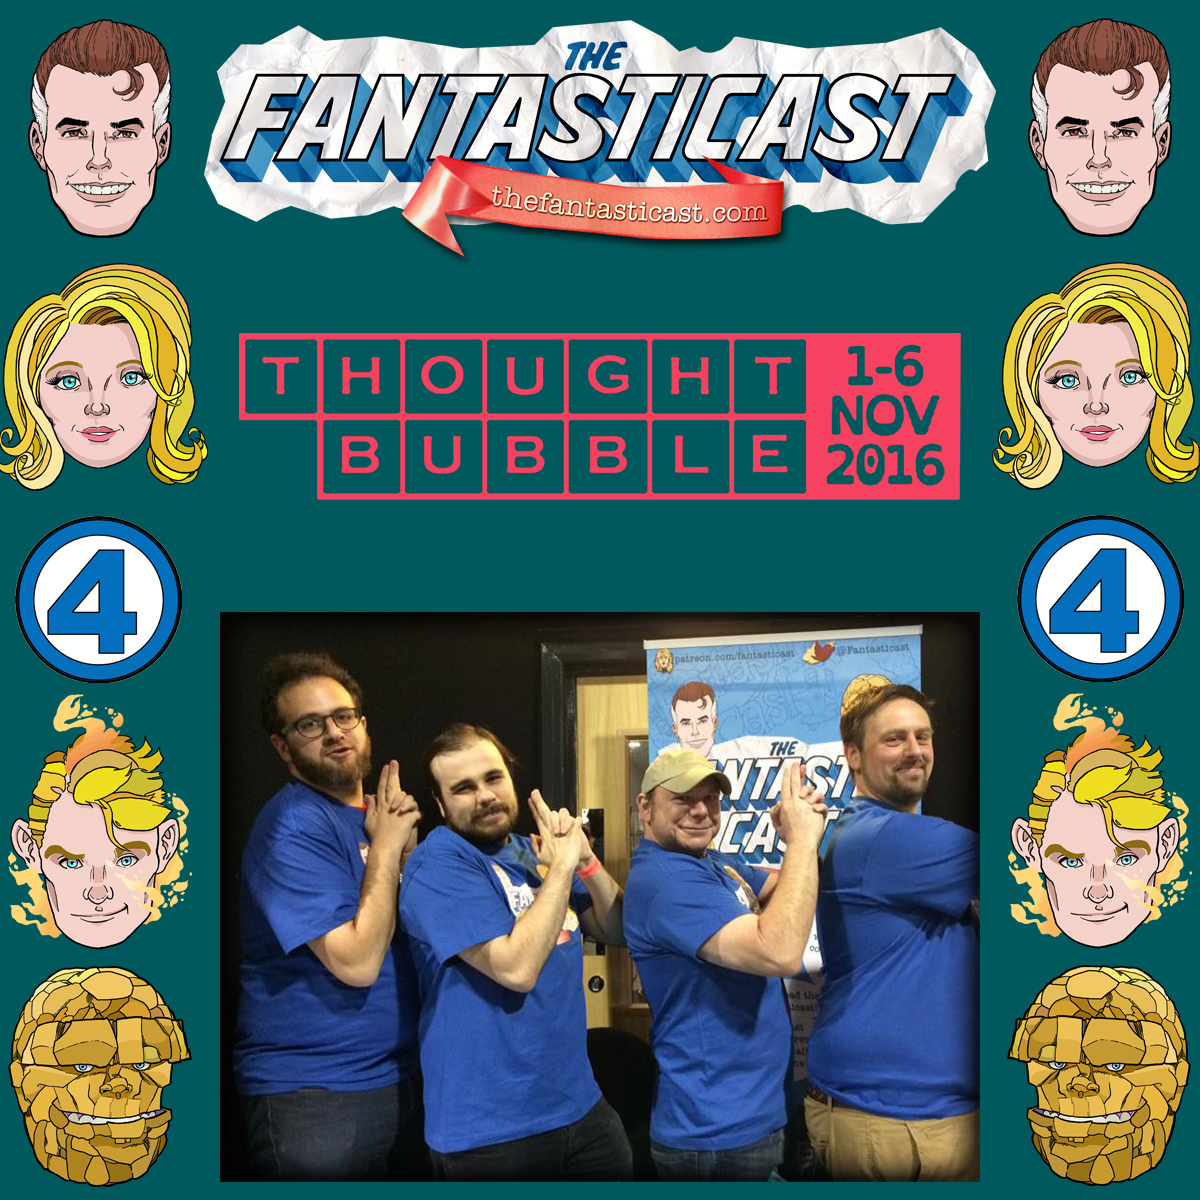 Episode 212: The Fantasticast at Thought Bubble 2016